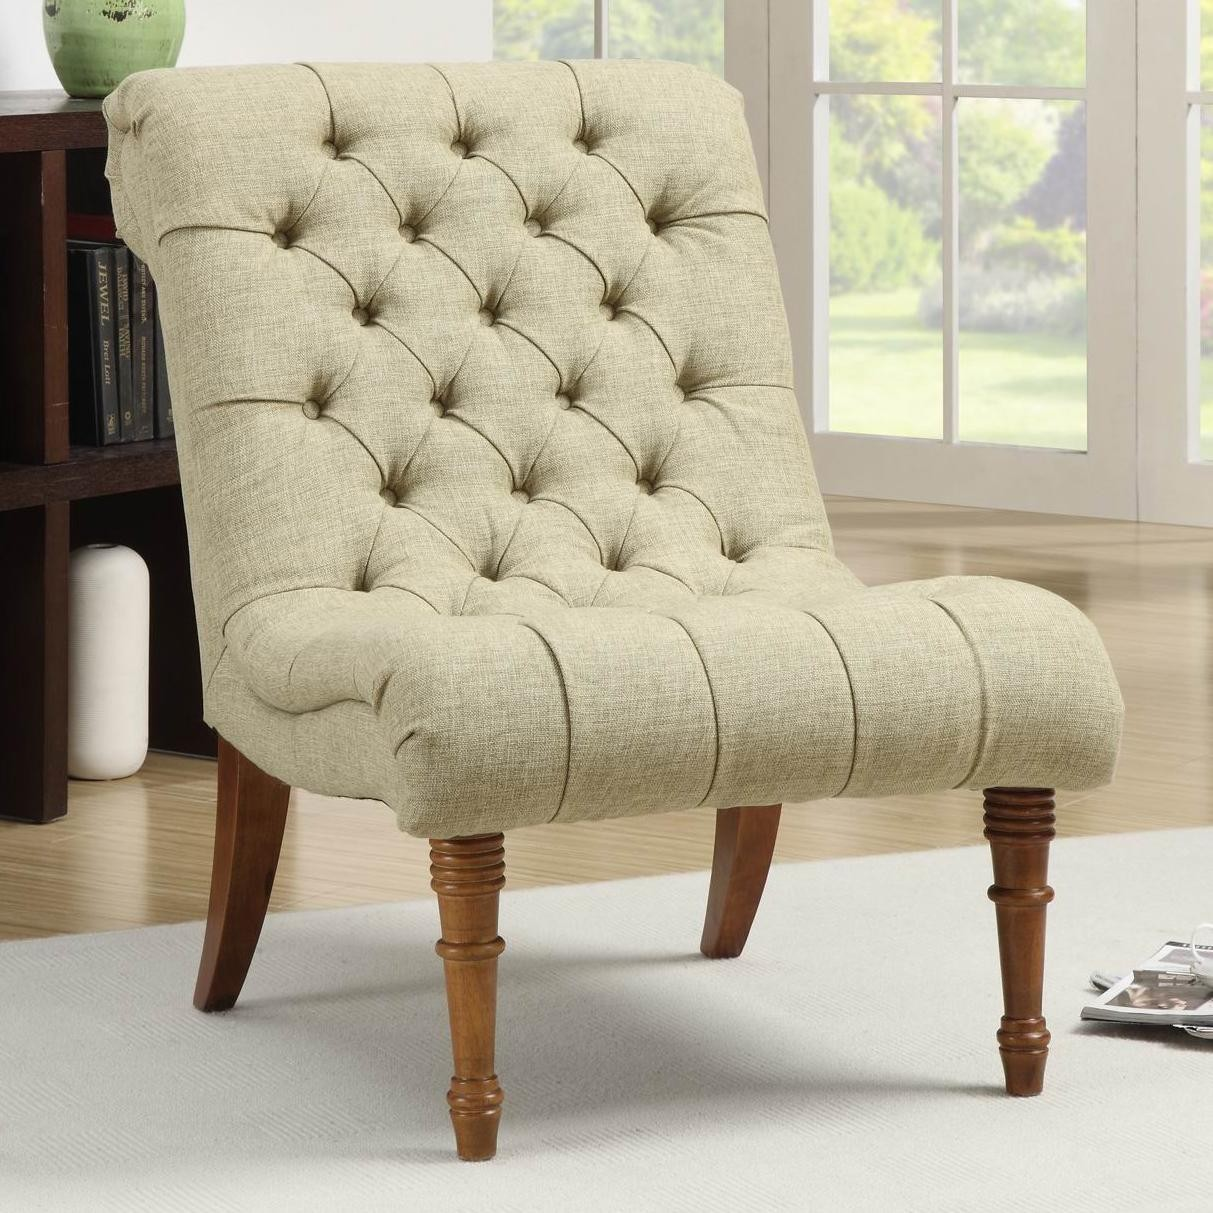 902218 tufted accent chair from coaster 902218 coleman Tufted accent chair